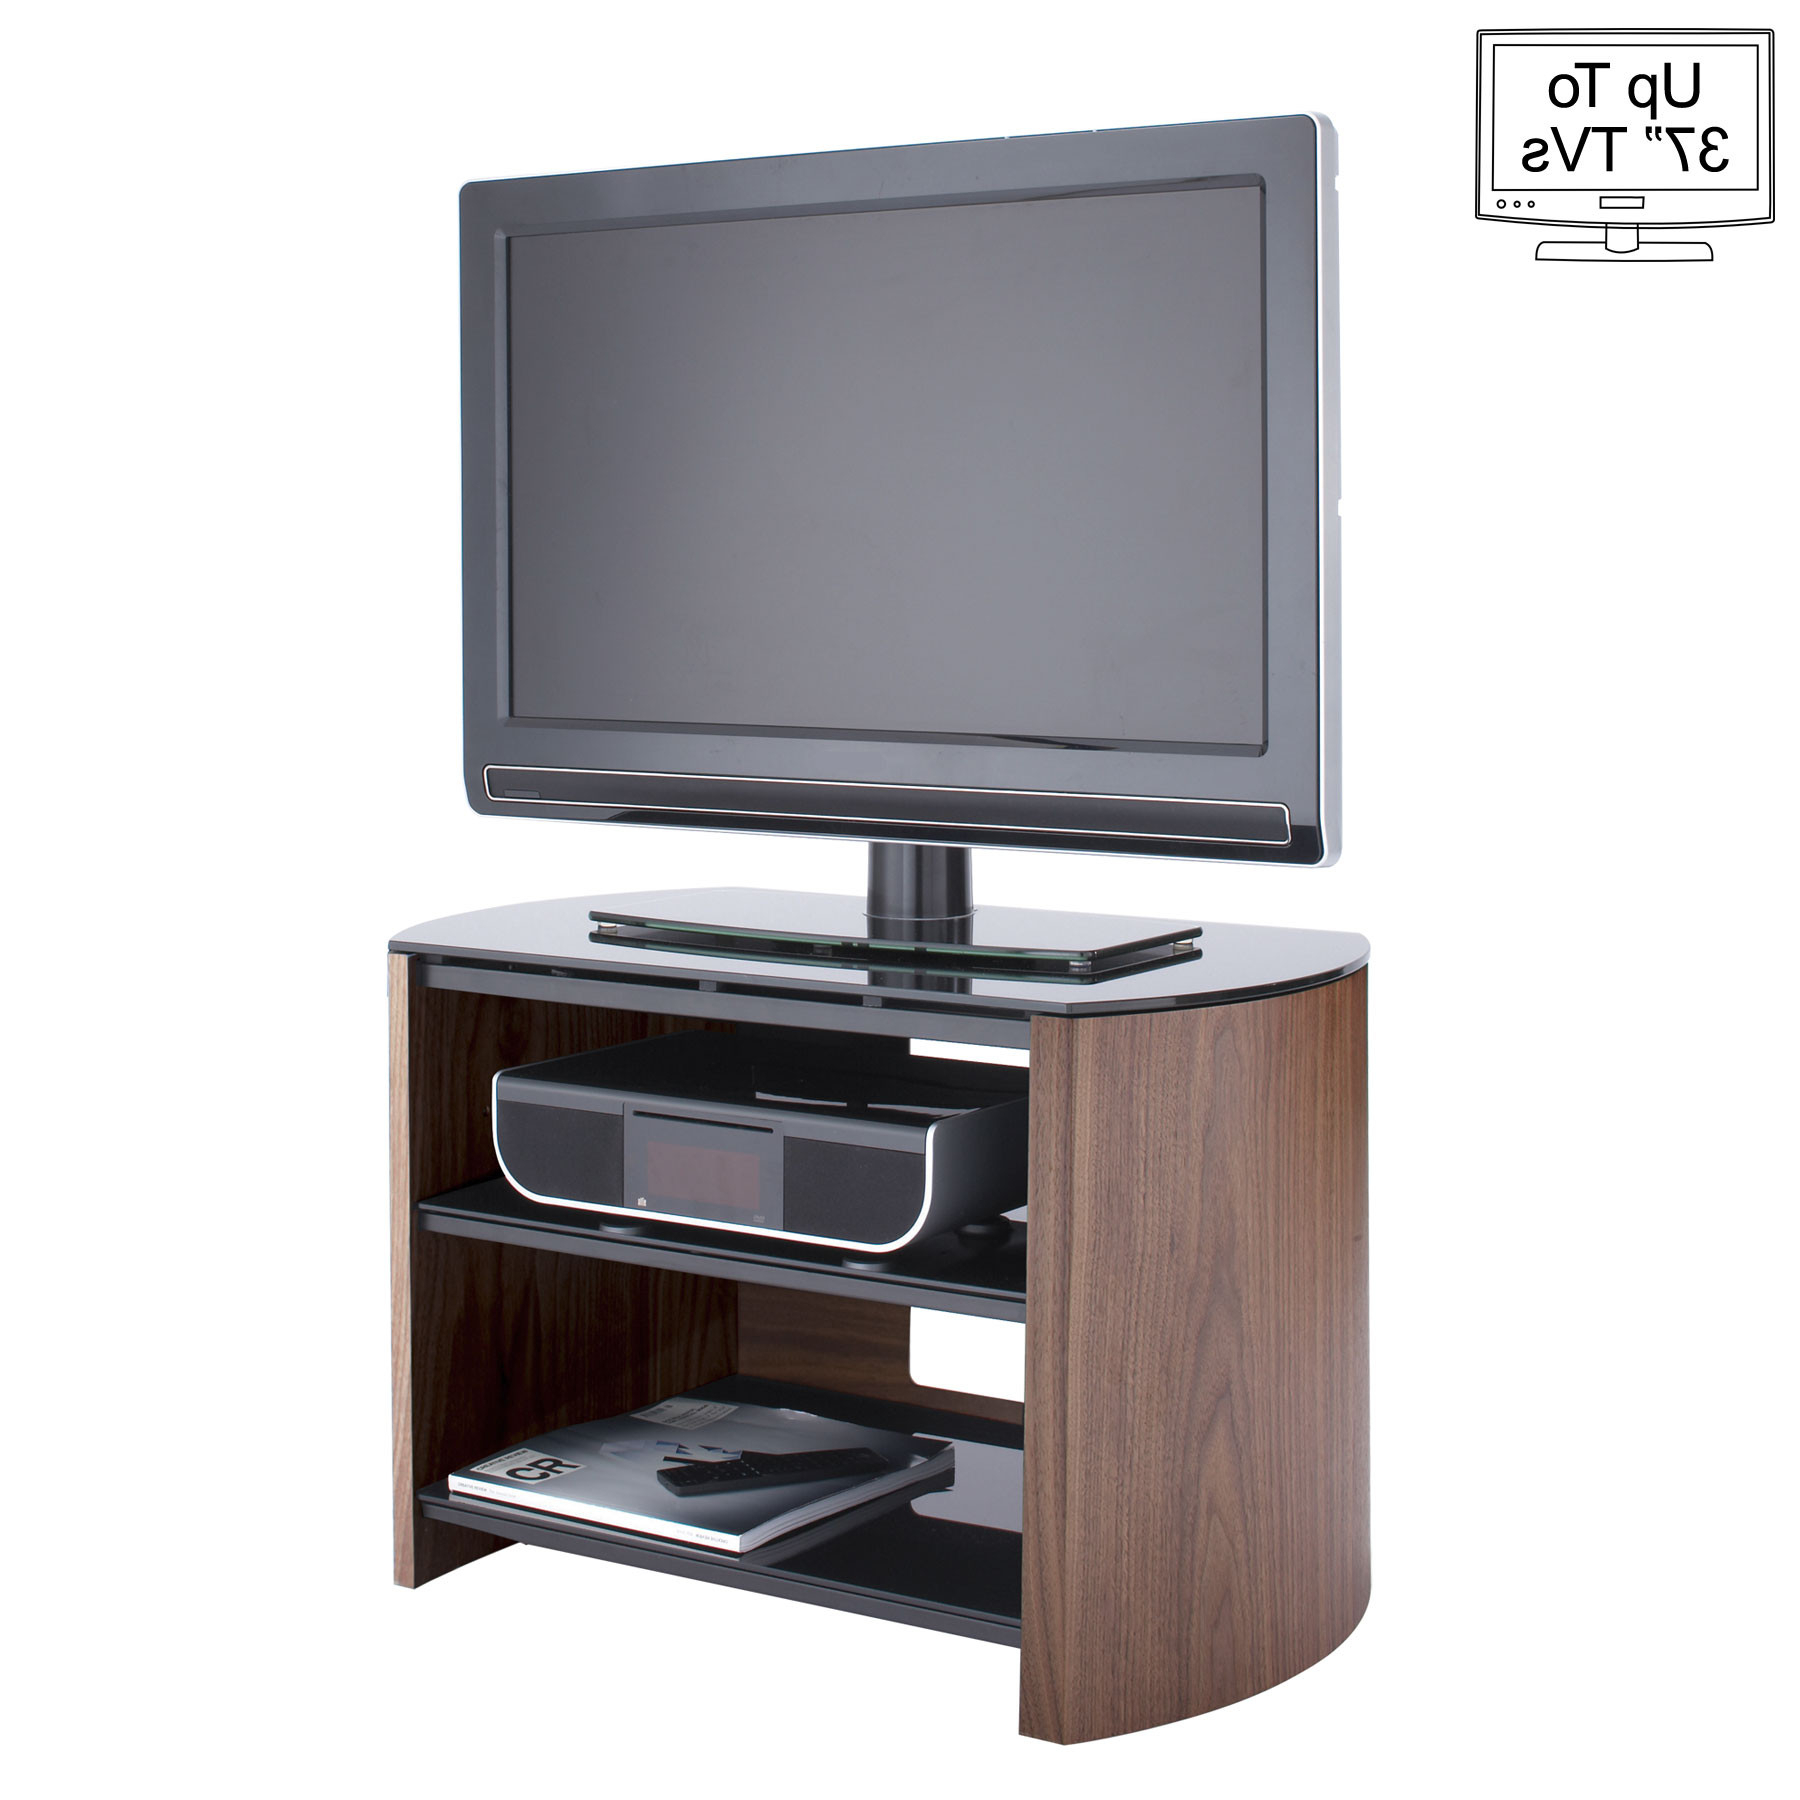 "Famous Alphason Finewood 75Cm Walnut Tv Stand For Up To 37"" Tvs Regarding Walnut Tv Stands (Gallery 14 of 20)"